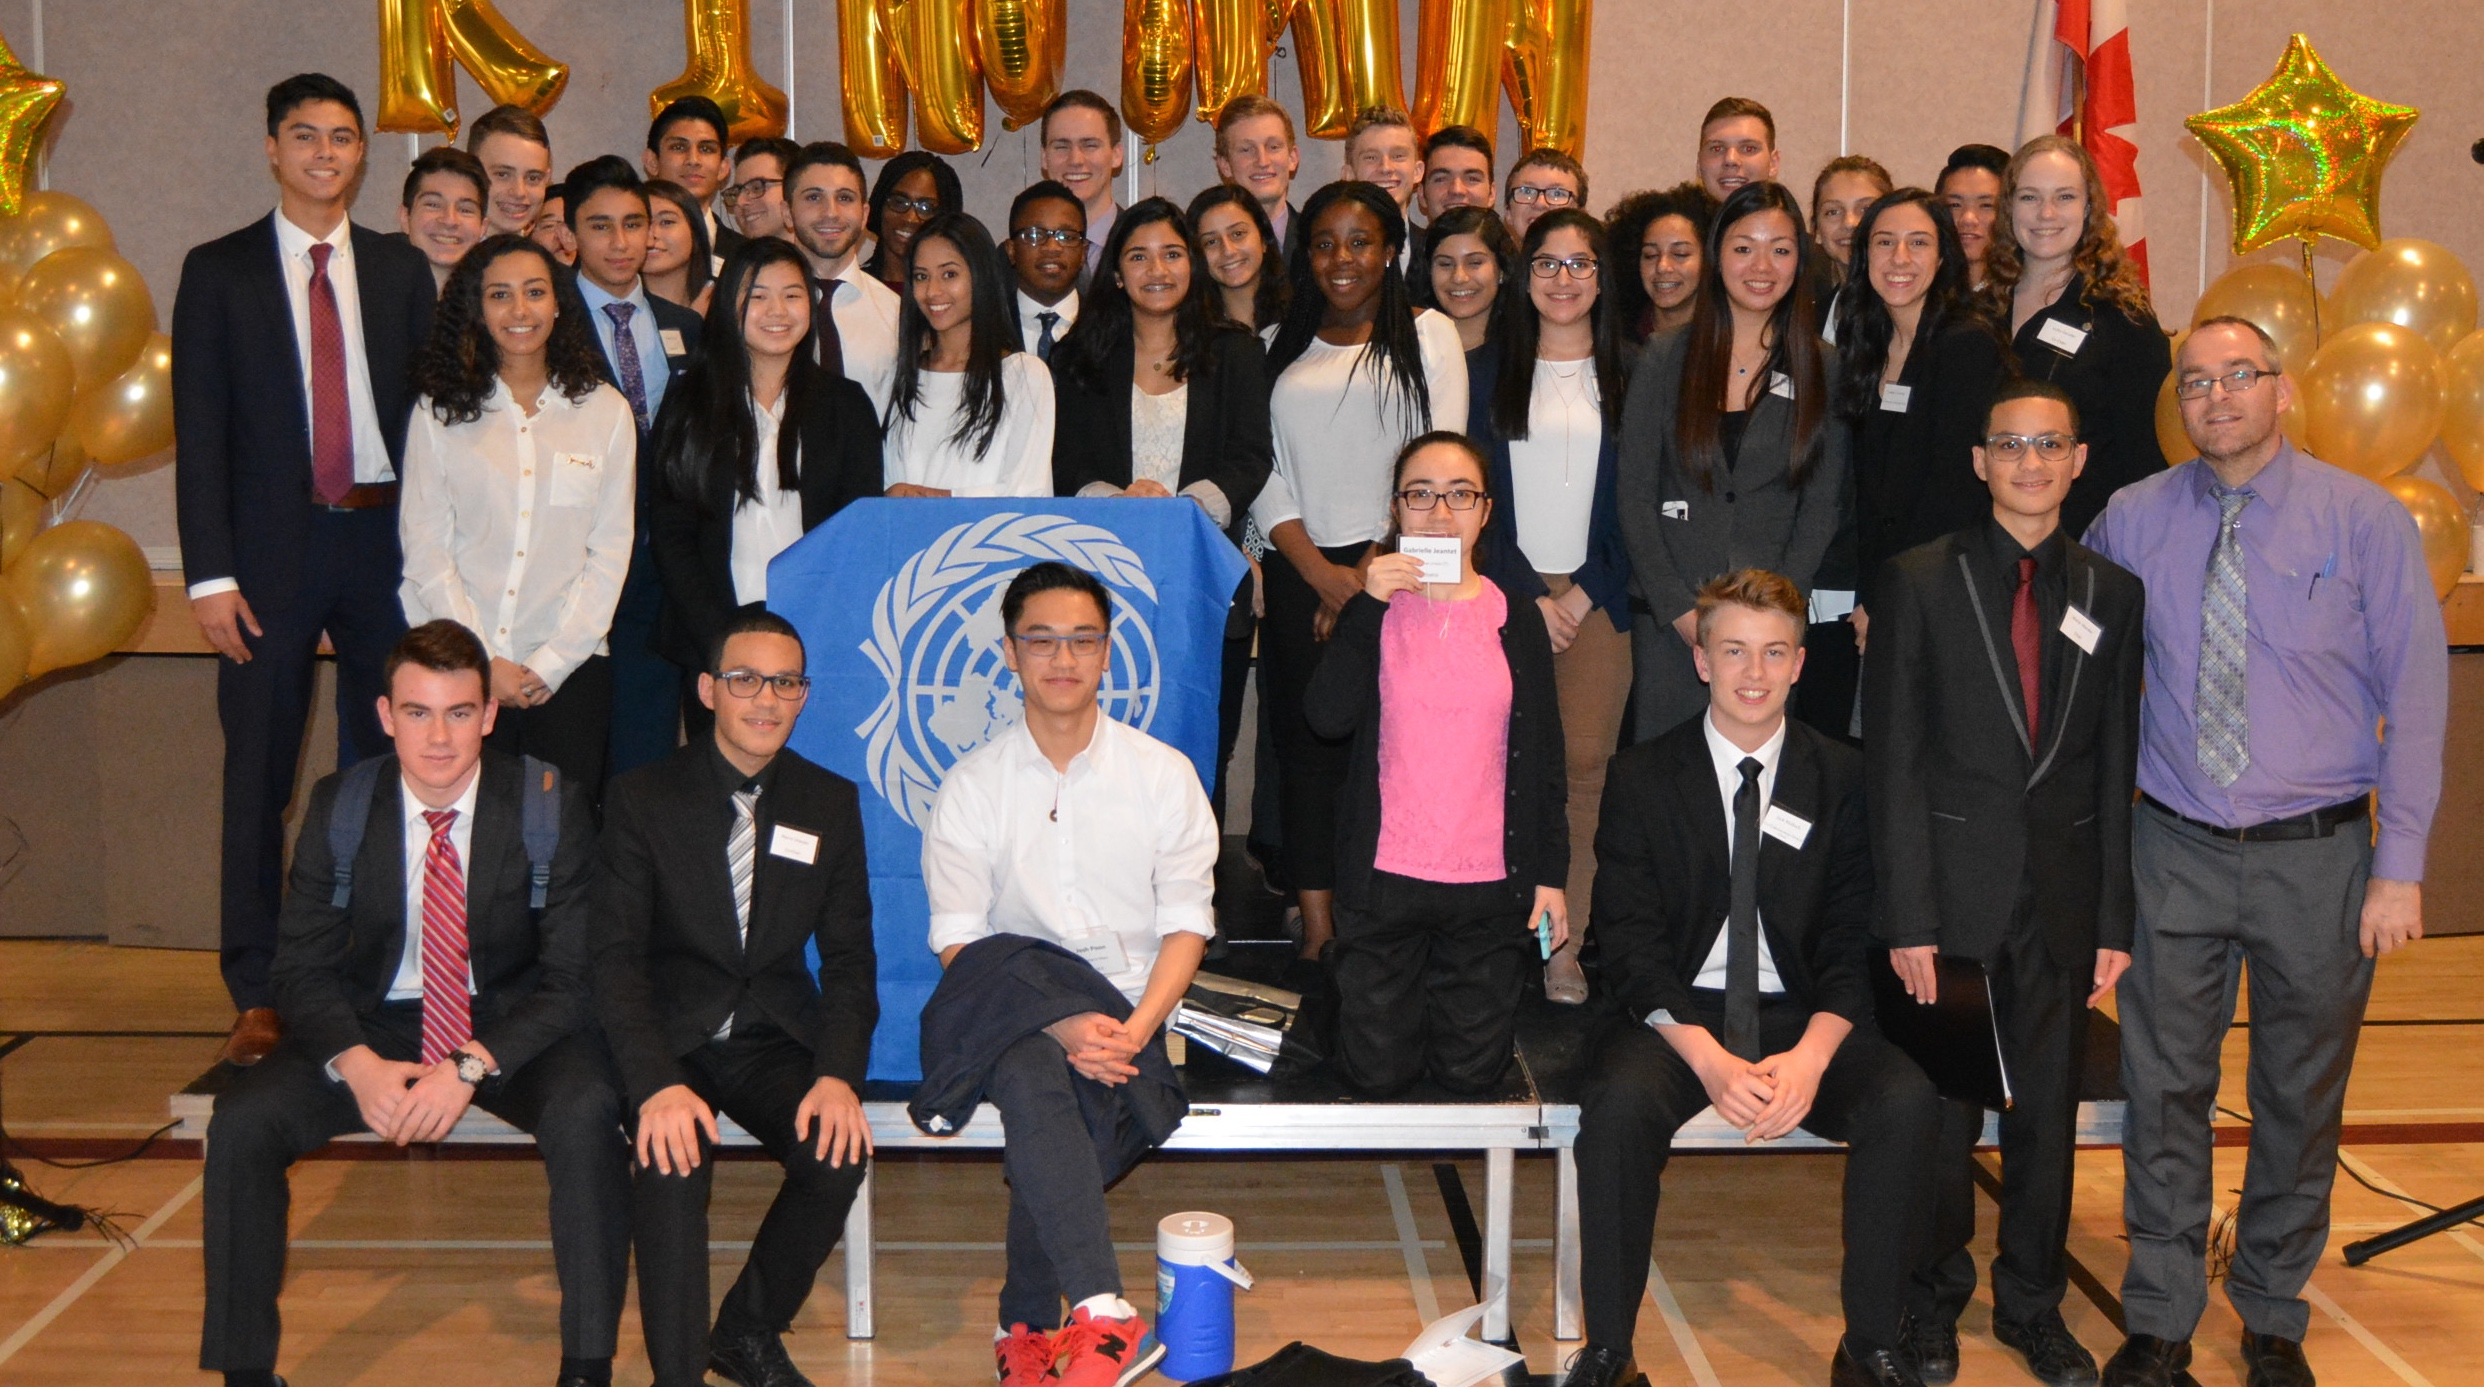 King'sMUN Secretariat and Volunteers